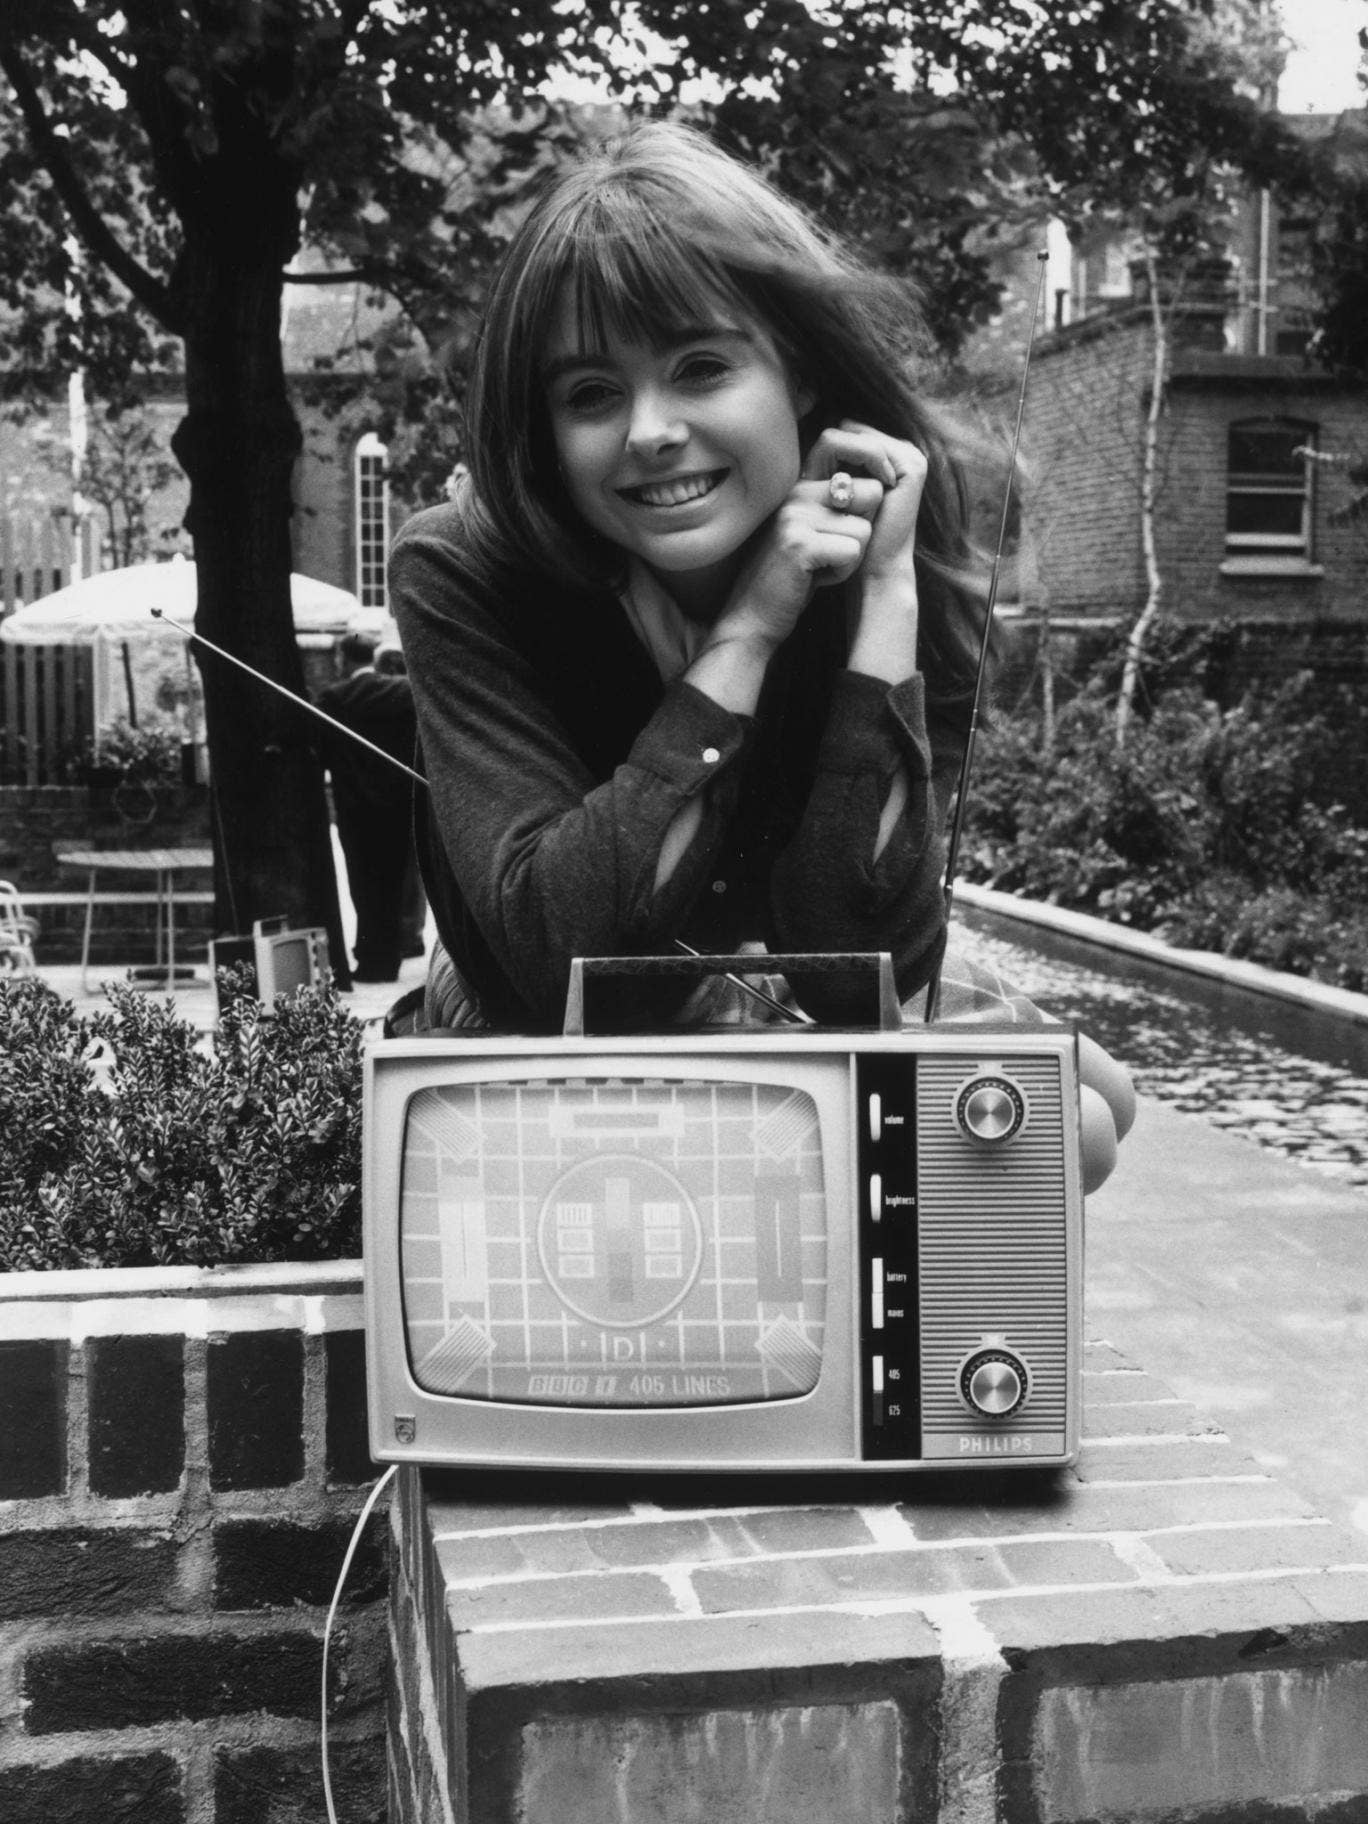 Samantha Juste was a feature of the Sixties pop scene